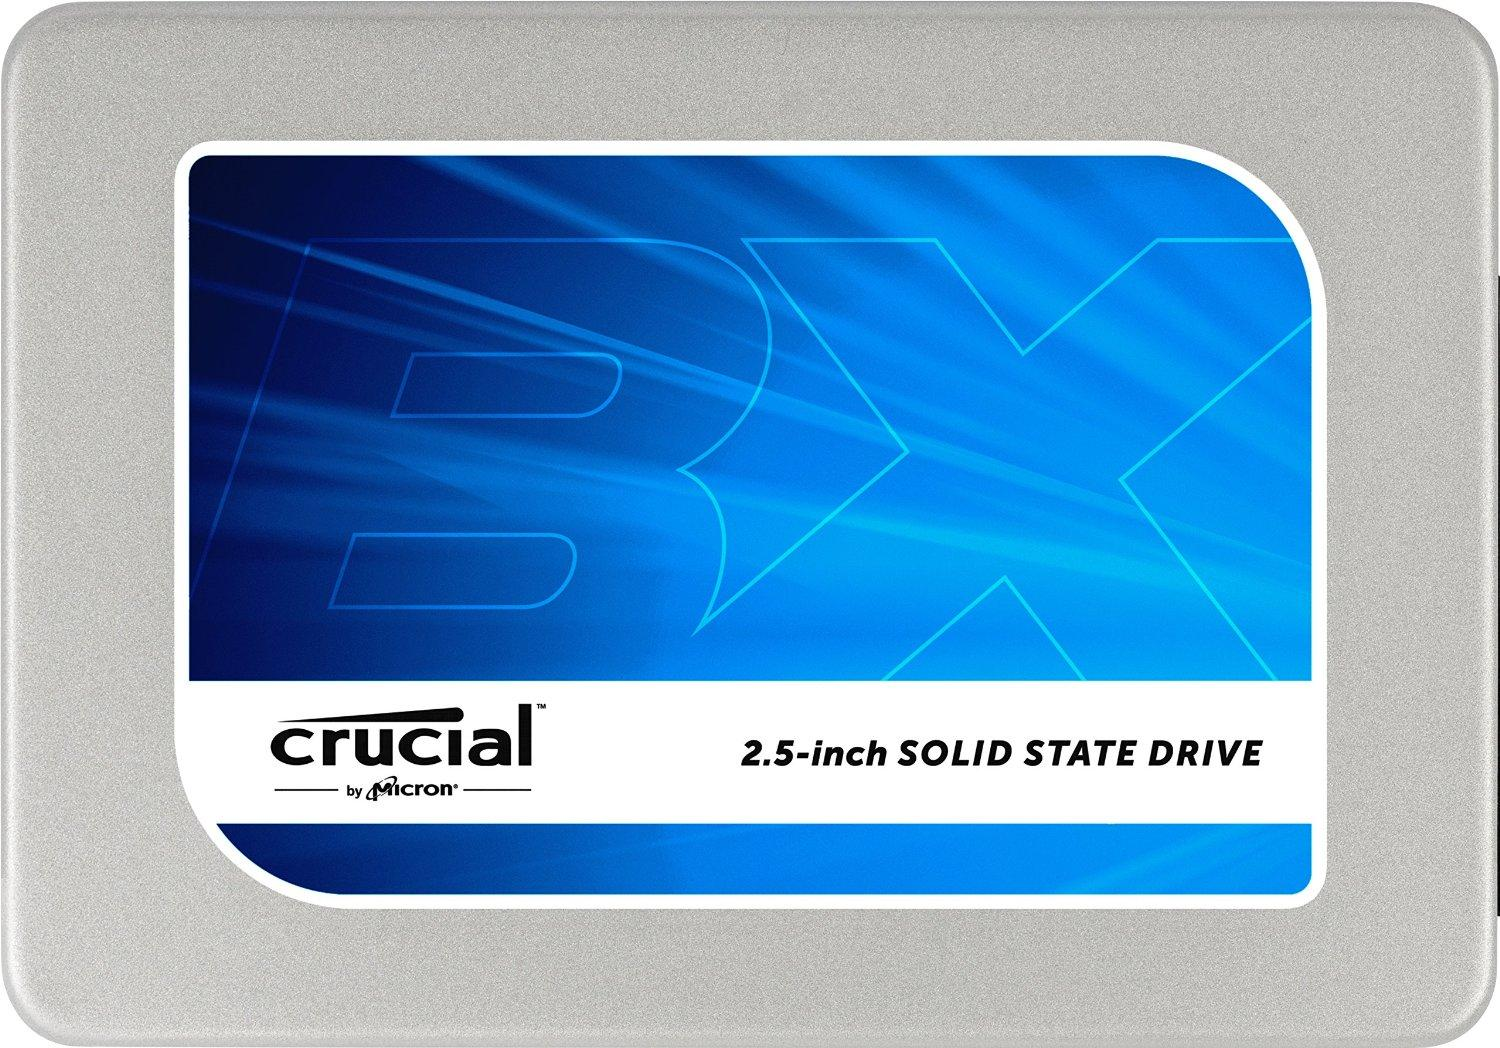 Up to 80% off Save on Select Crucial and Lexar Memory Products